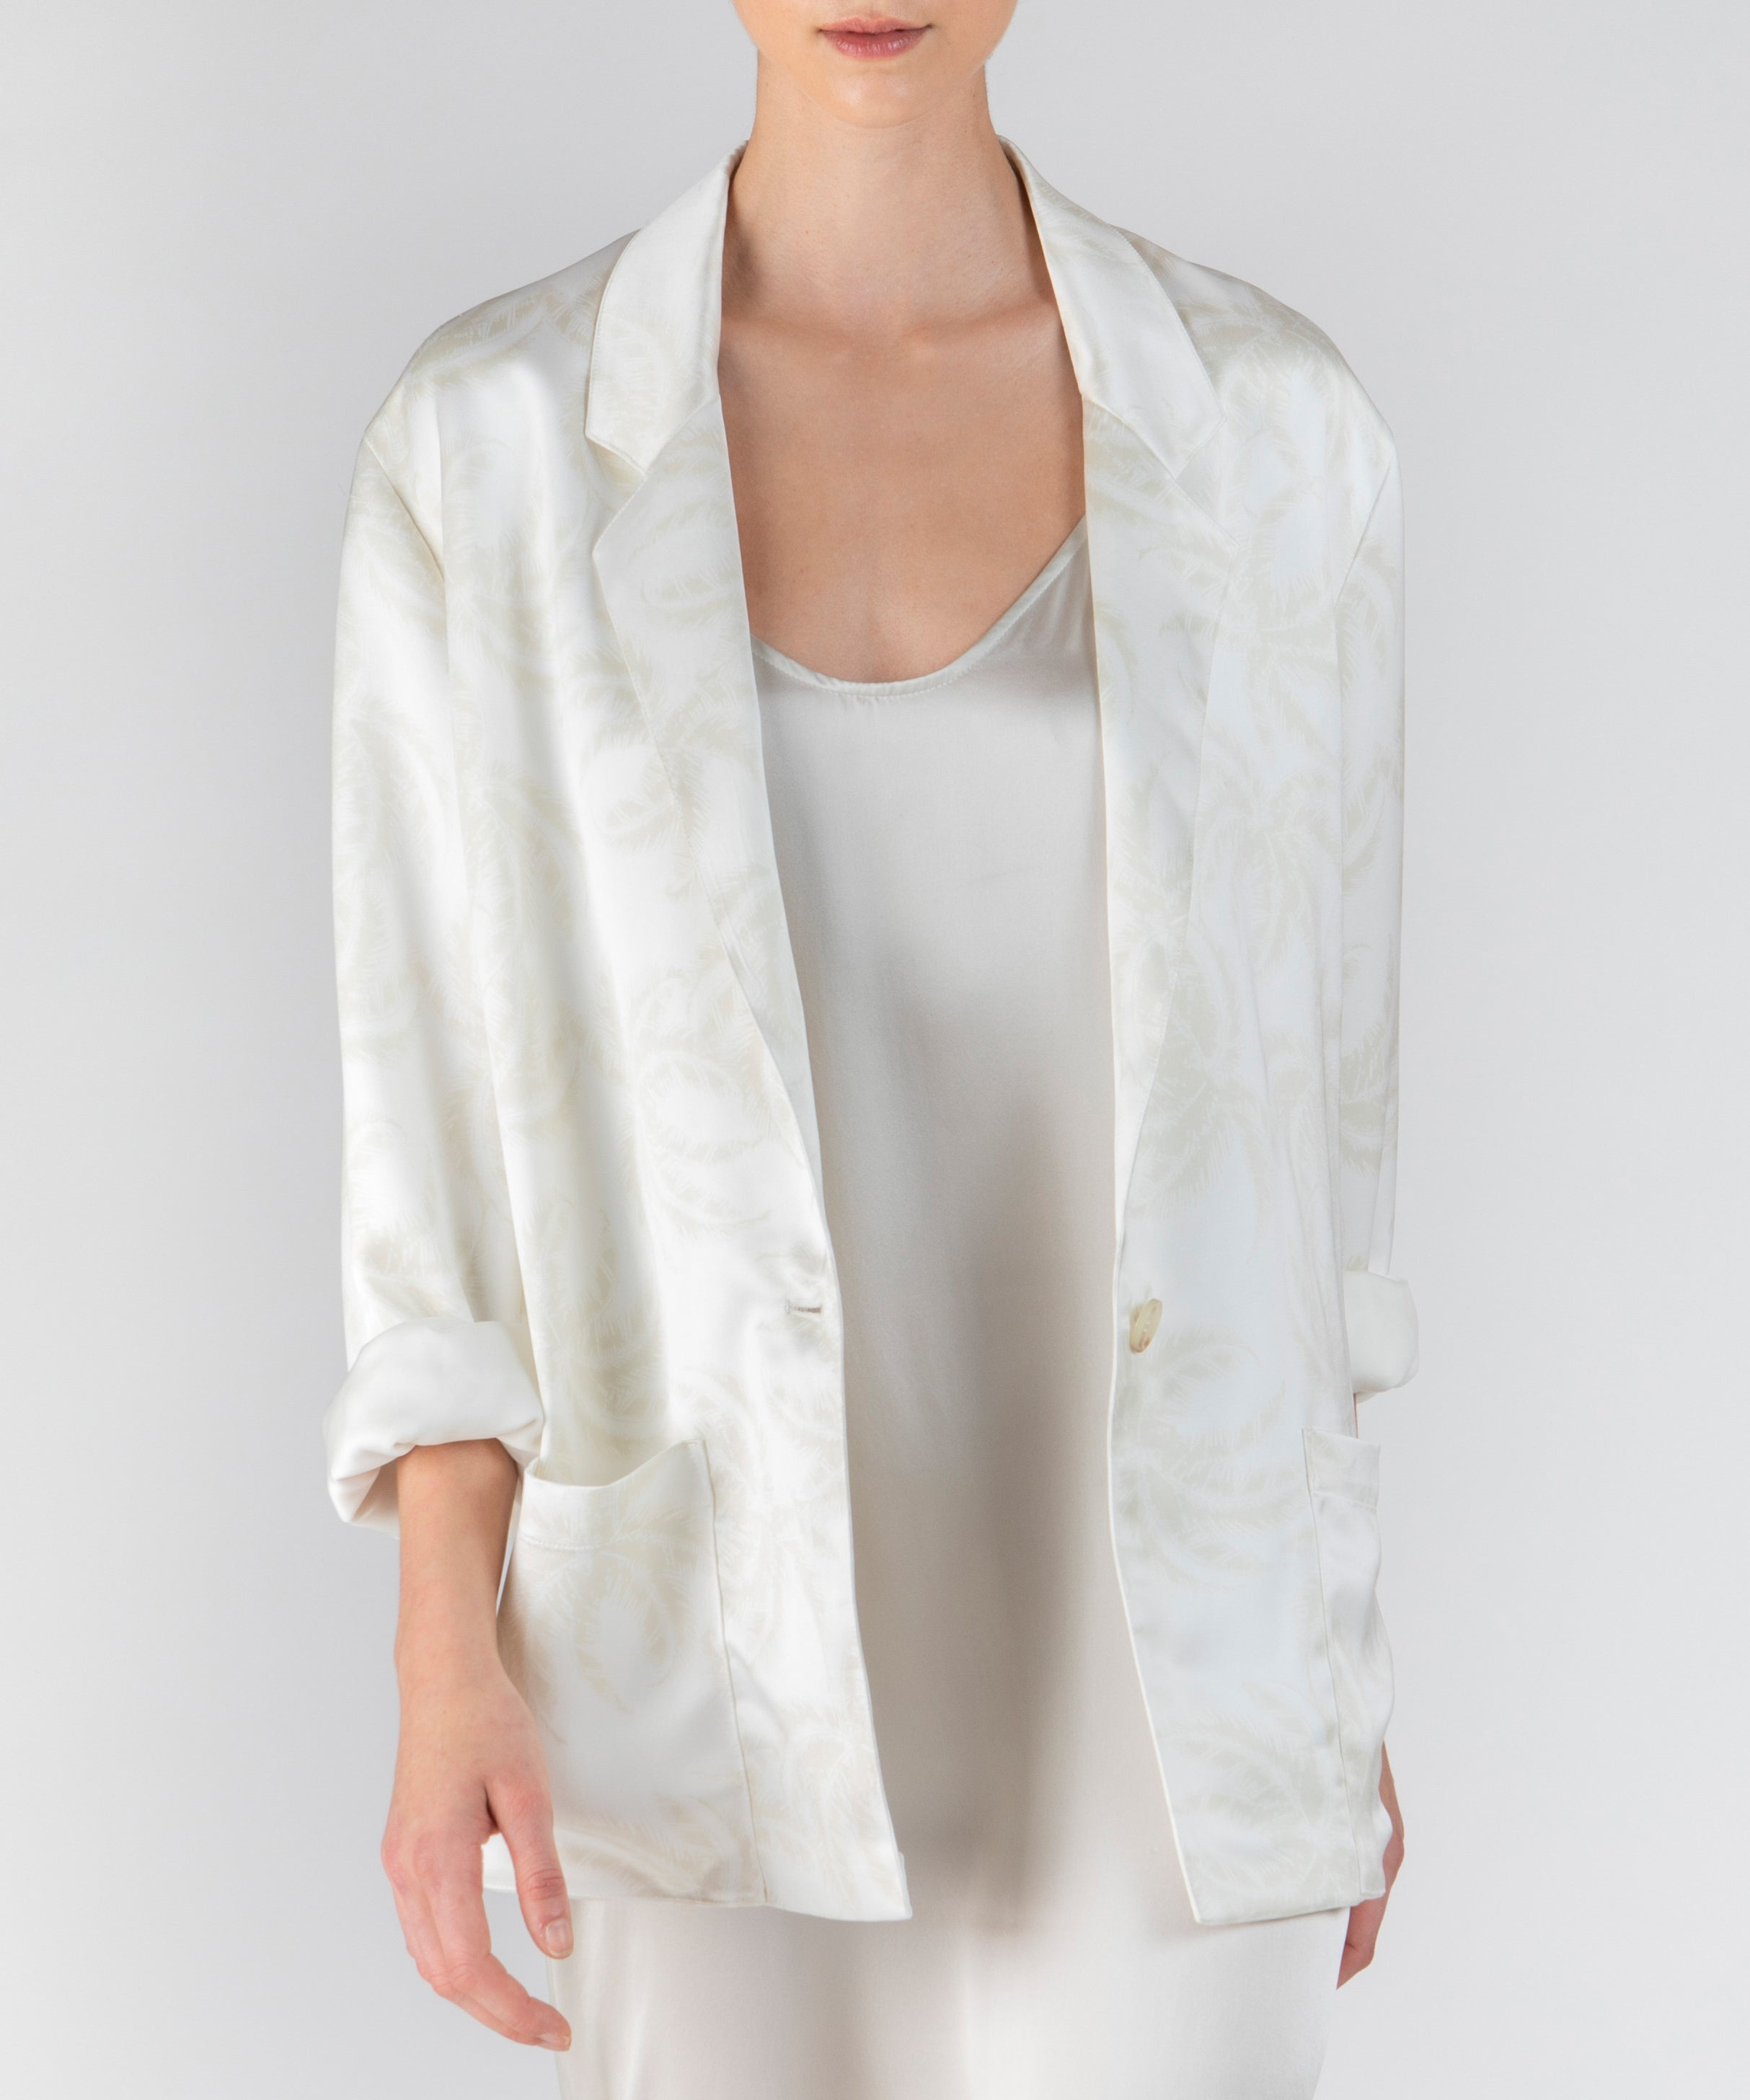 Linen Combo Palm Print Satin Single Breasted Blazer - Women's Casual Jacket by ATM Anthony Thomas Melillo